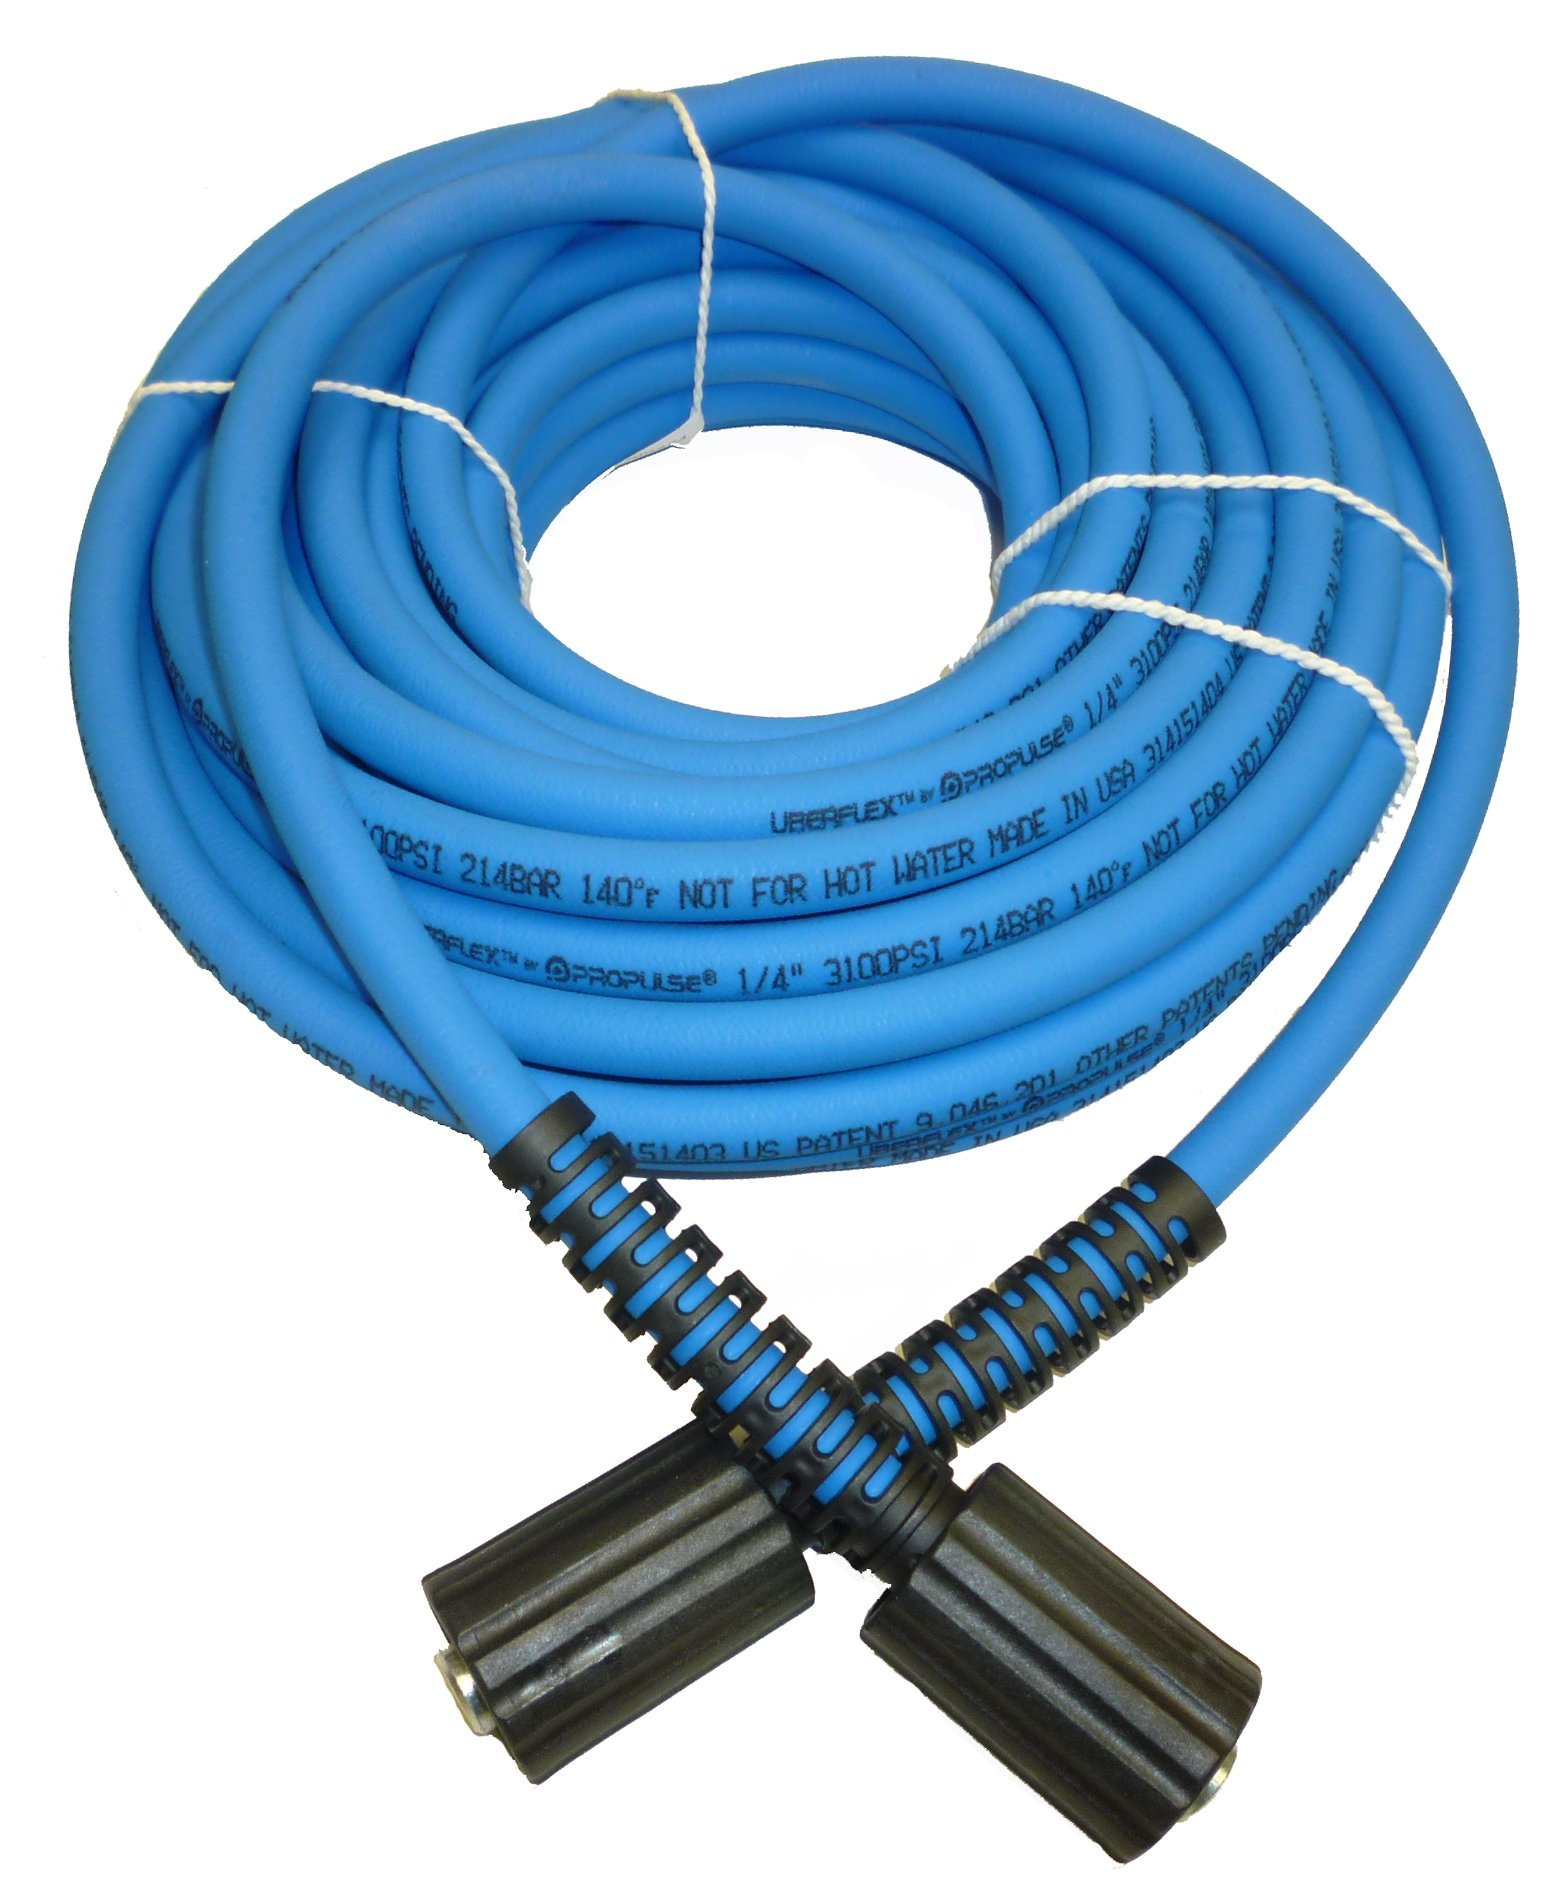 UBERFLEX Kink Resistant Pressure Washer Hose 1/4'' x 50' 3,100 PSI with (2) 22MM by PROPULSE